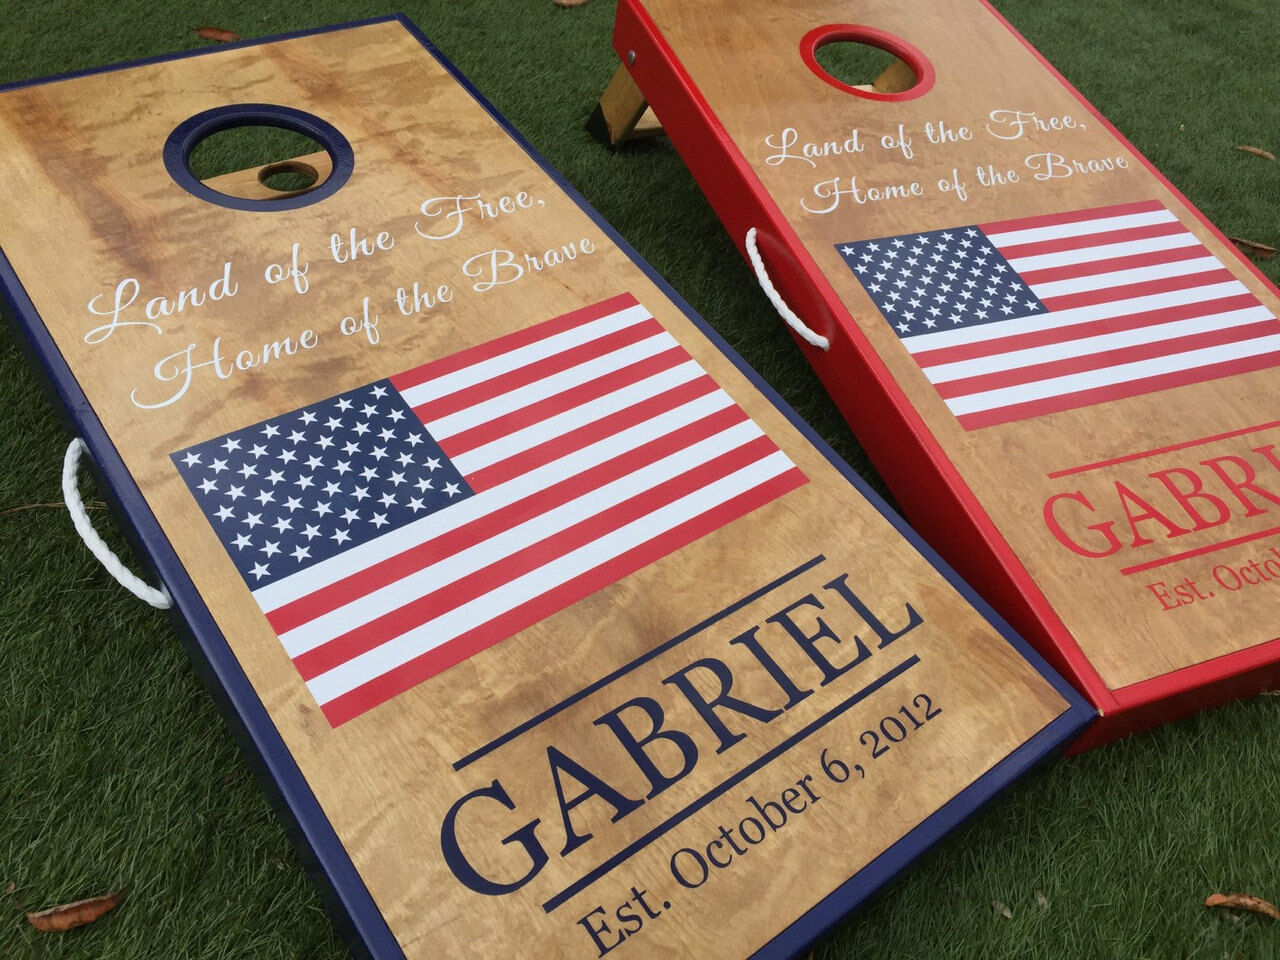 American Flag and Monogram Cornhole Boards